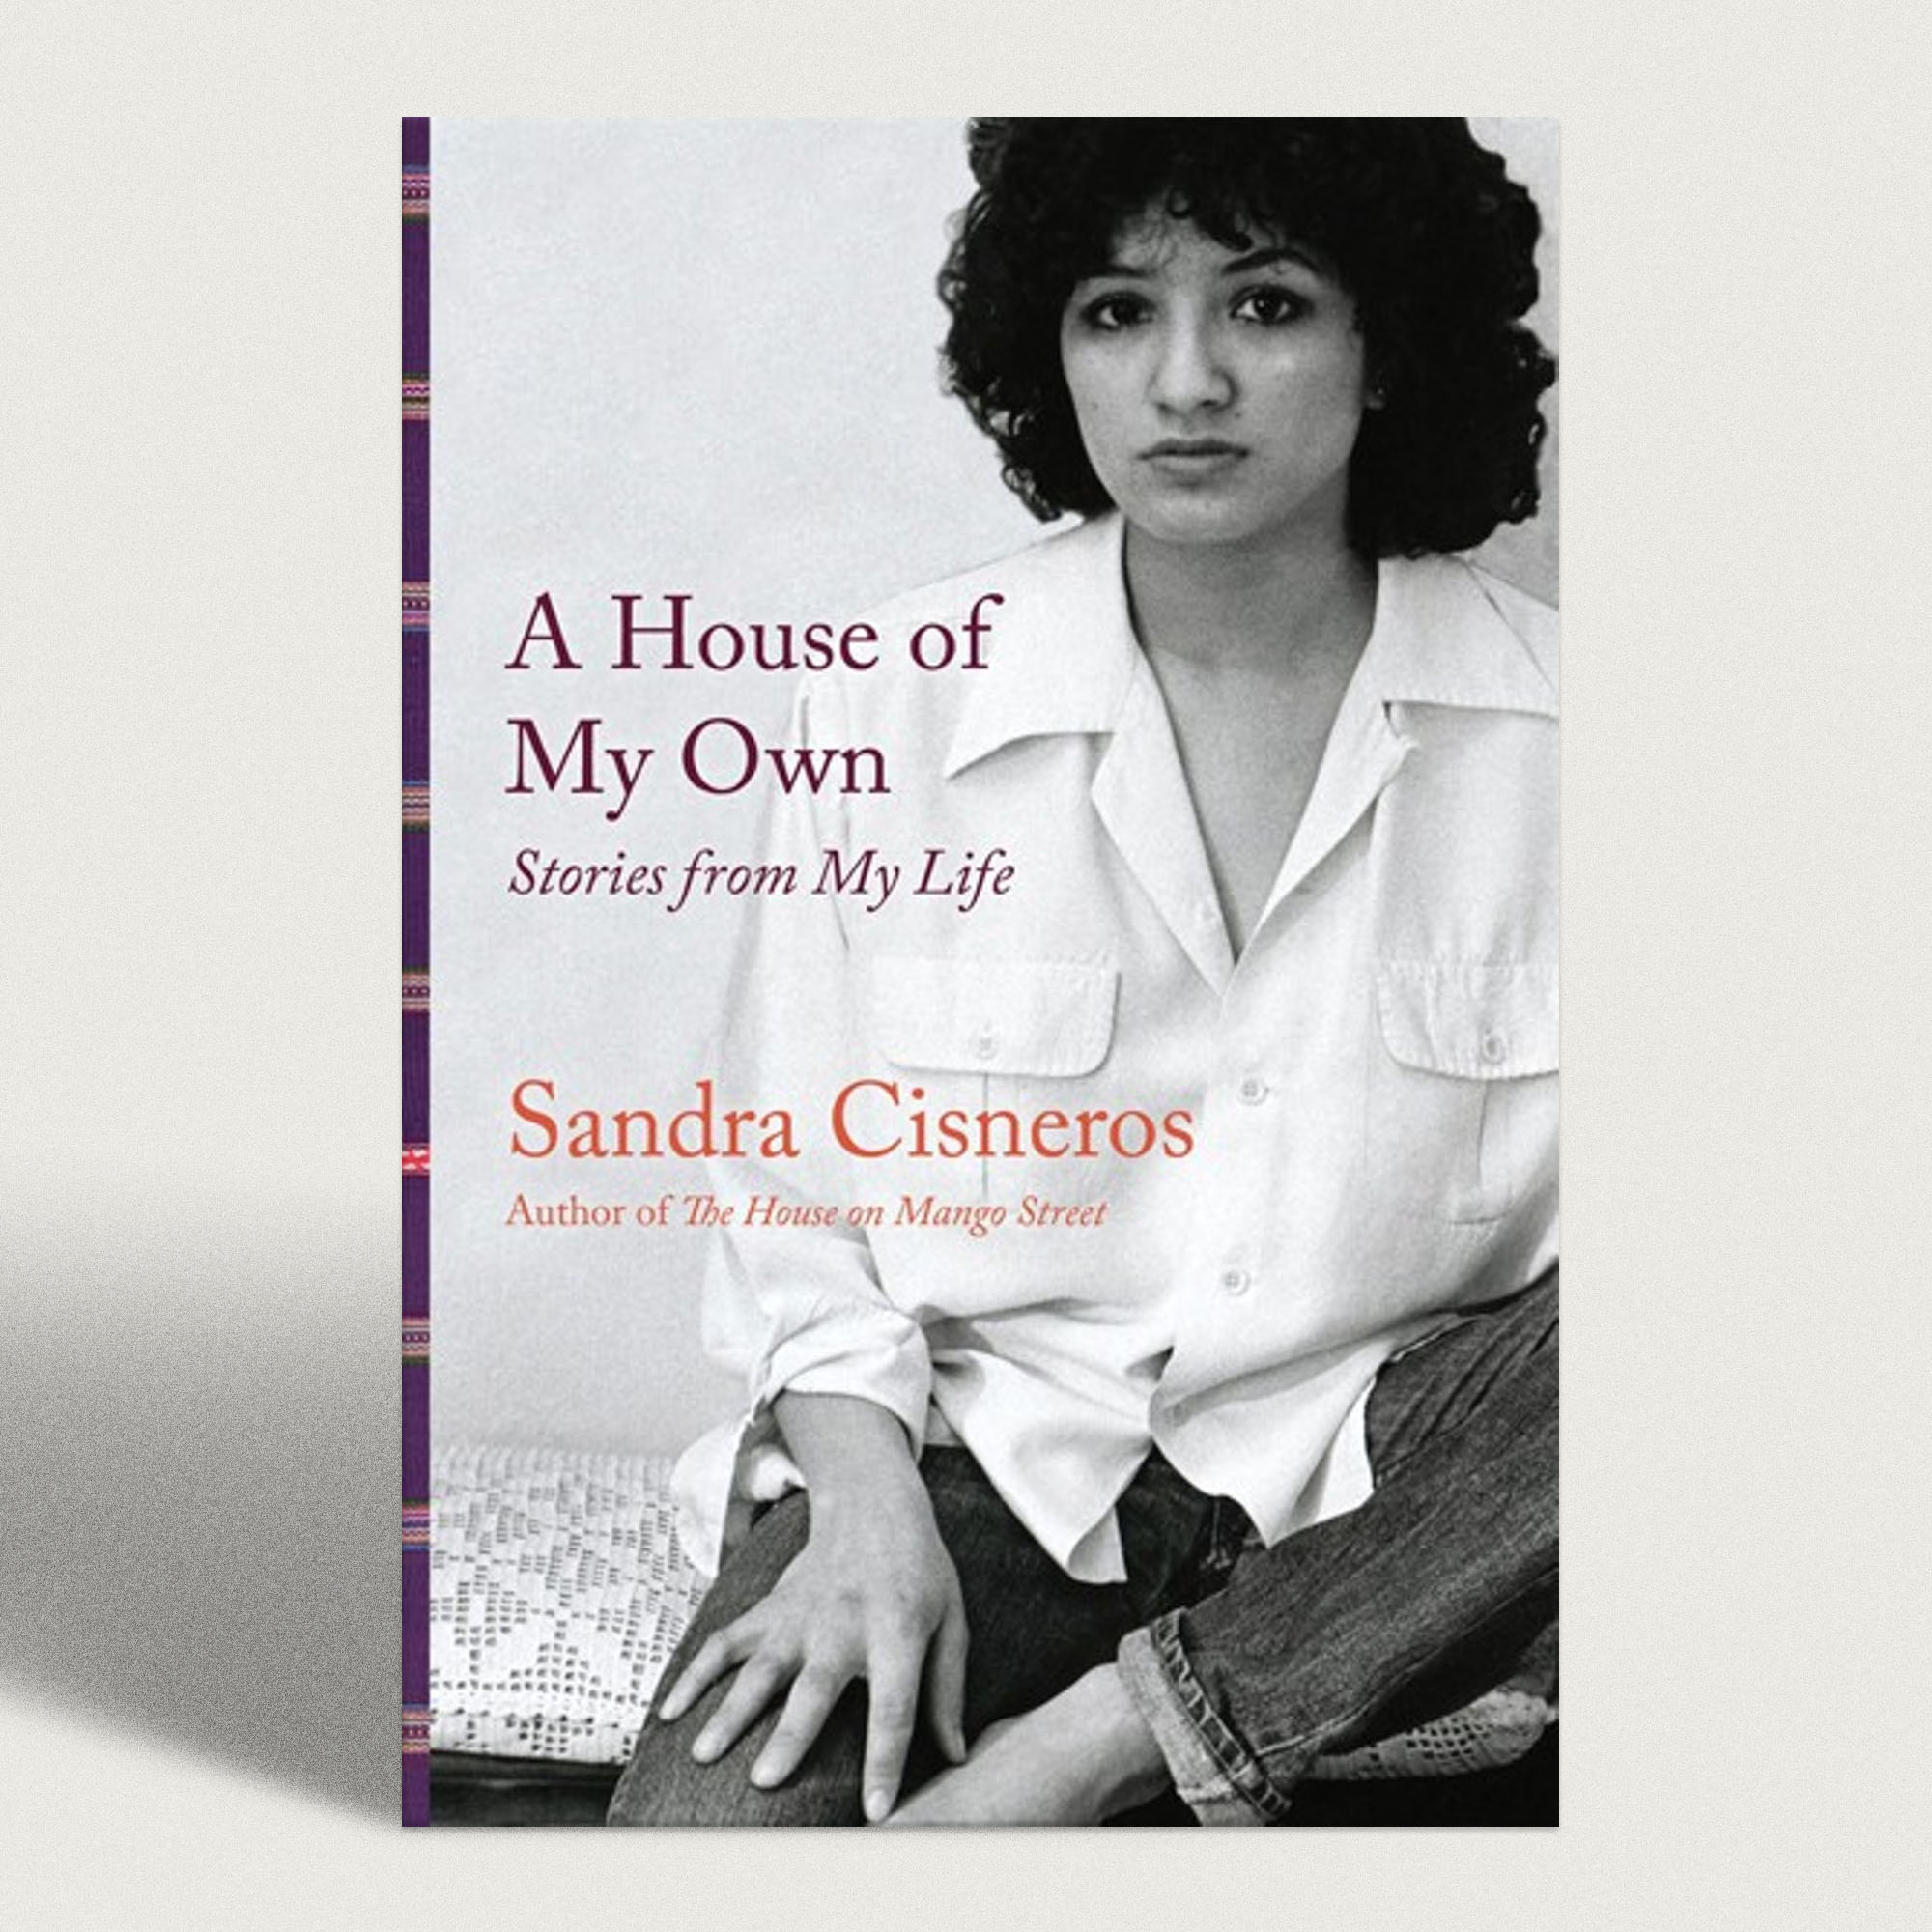 a shy girl blooming into a woman in the house on mango street by sandra cisneros The house on mango street sandra cisneros mango street into into attend the funeral of sandra bland, a black woman found dead in a texas jail.